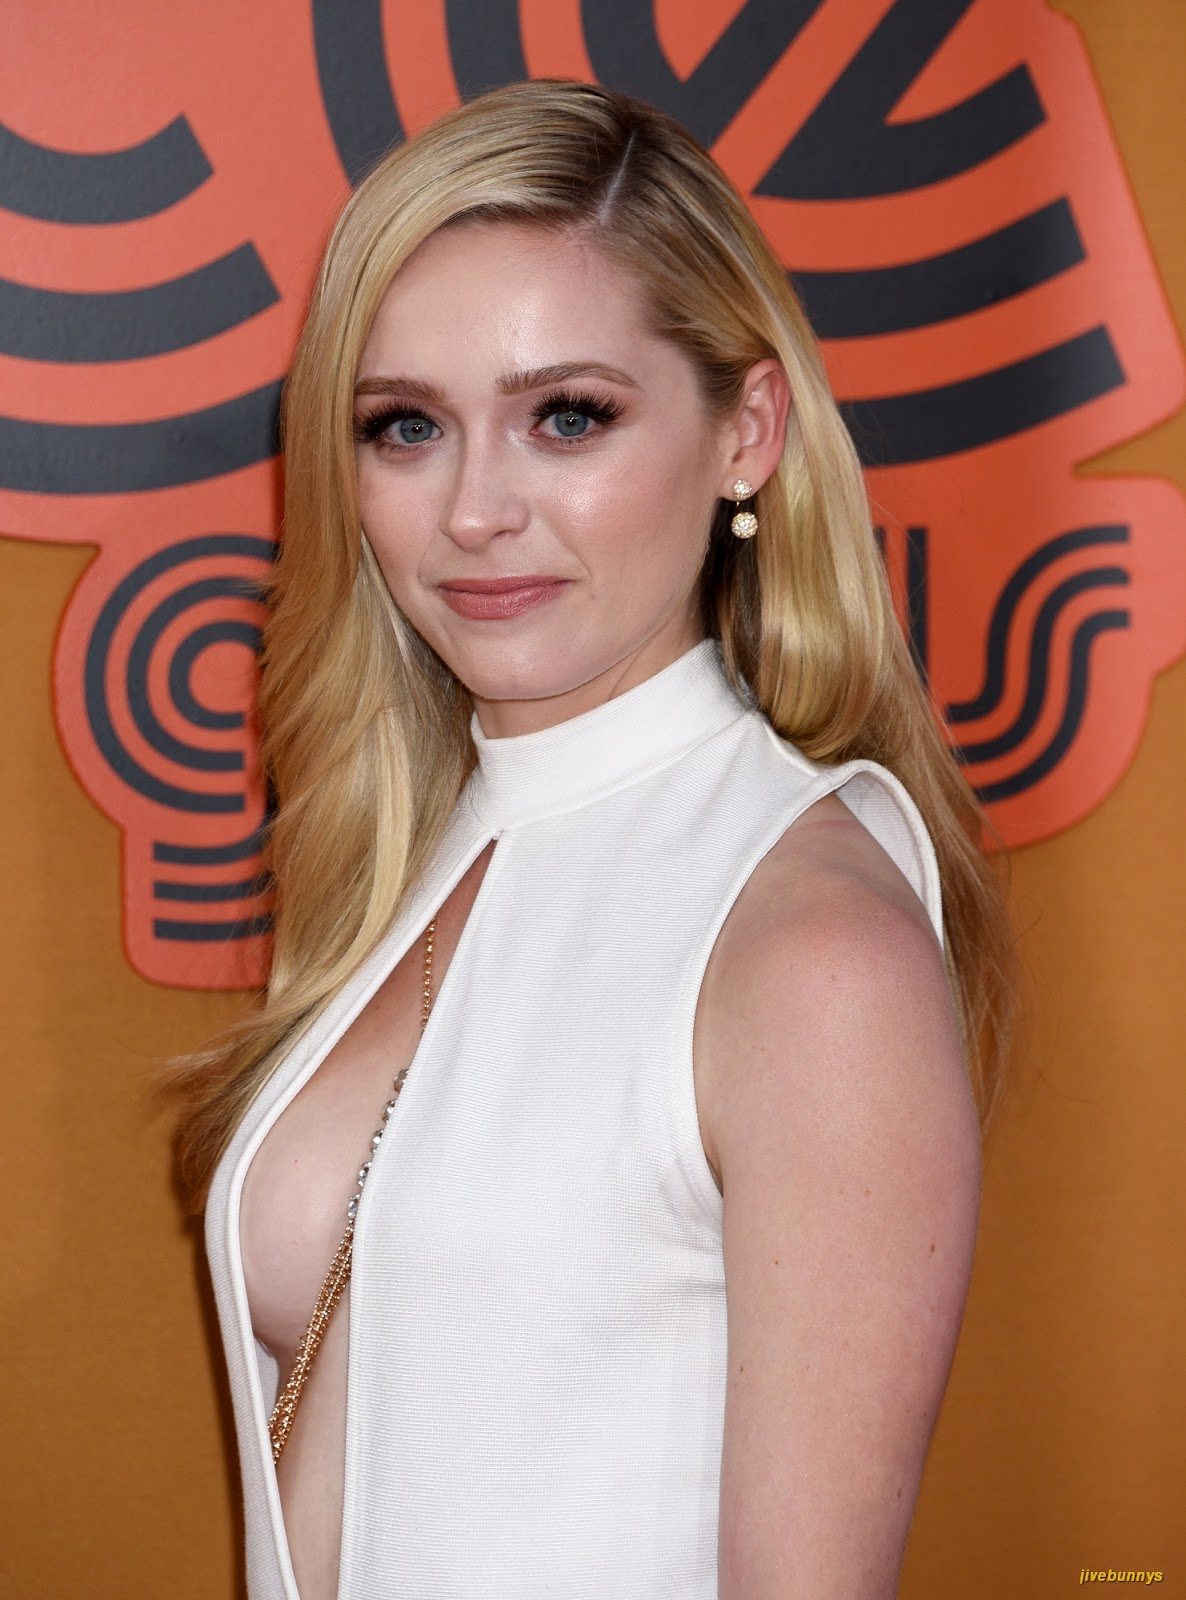 Celebrity Greer Grammer nudes (42 photo), Sexy, Paparazzi, Instagram, cameltoe 2018